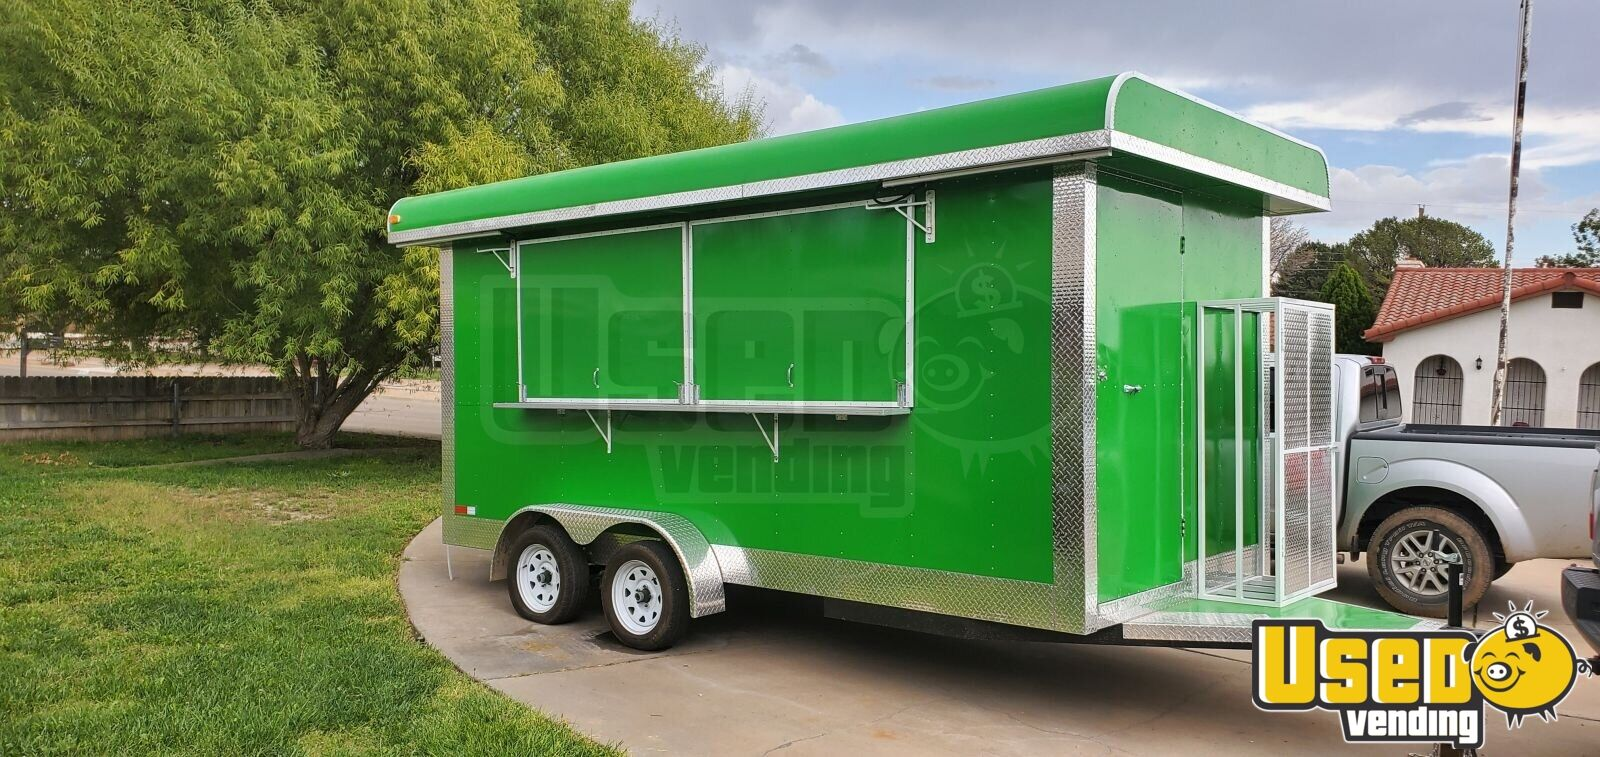 2019 Kitchen Food Trailer Air Conditioning New Mexico for Sale - 2